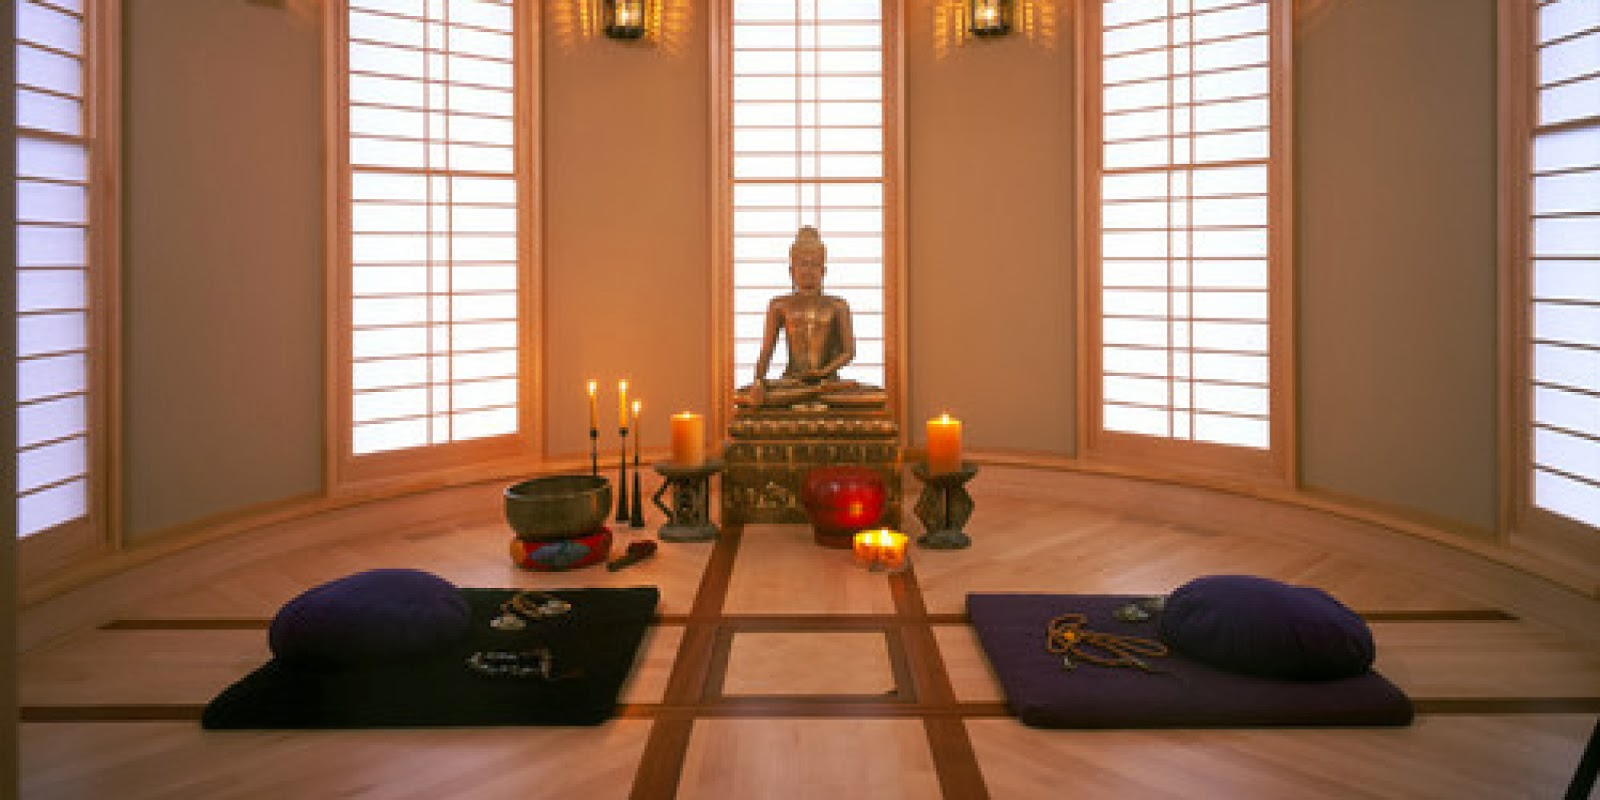 Yoga room design ideas new design ideas for How to design a room